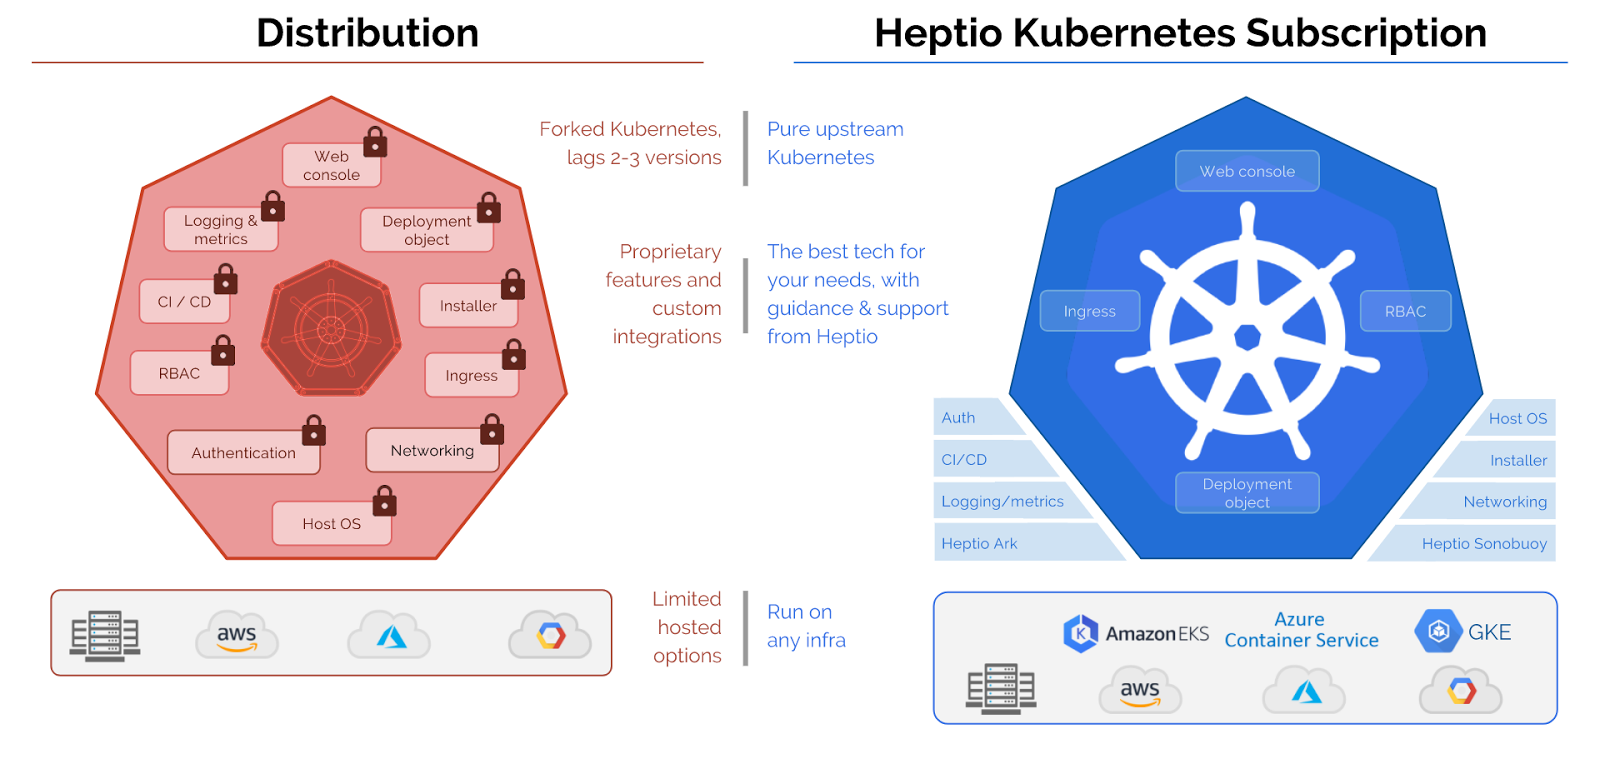 Introducing Heptio Kubernetes Subscription Hks The Undistribution